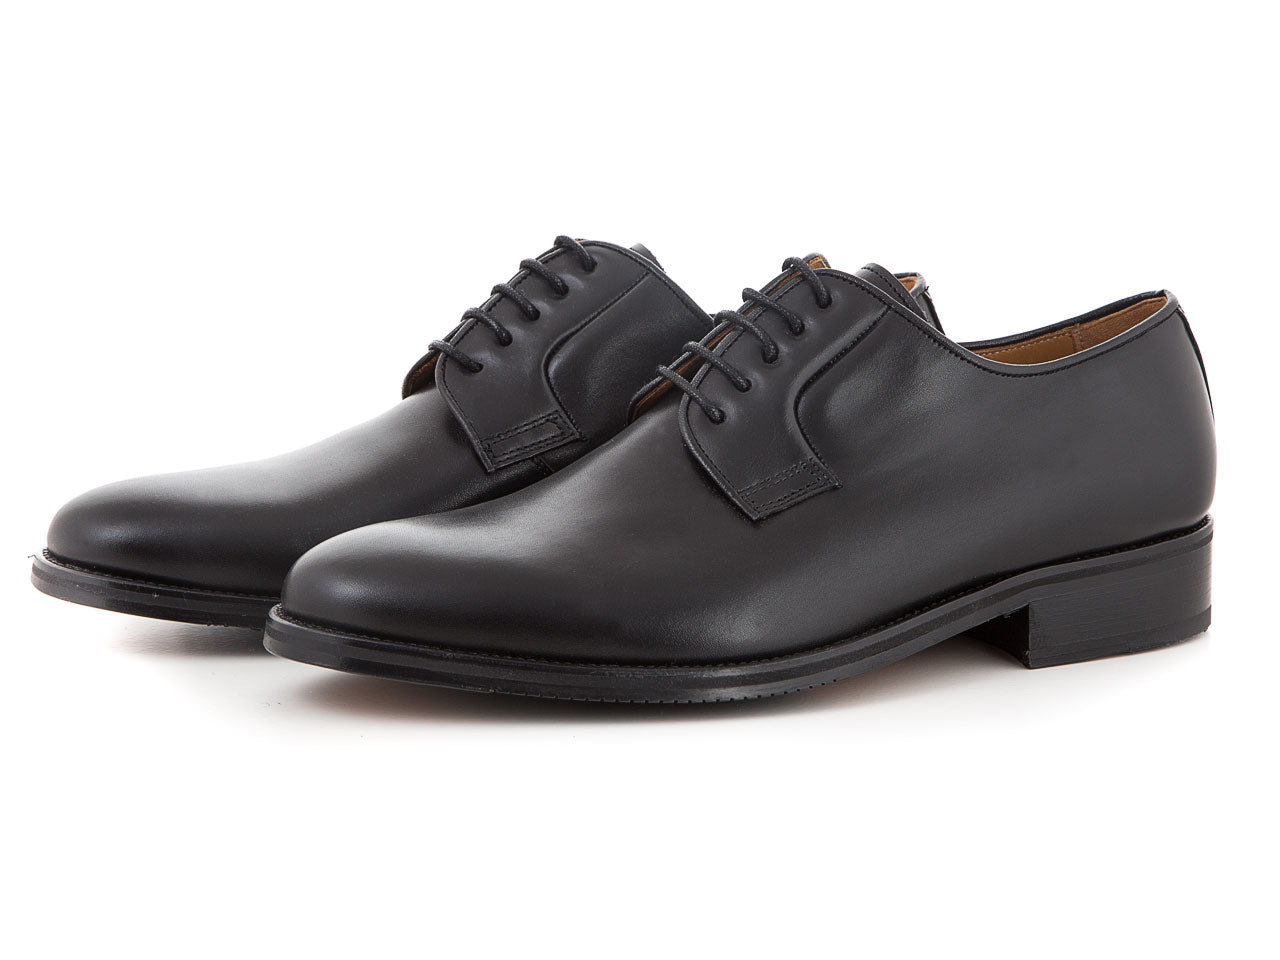 Classic elegant leather shoes all black for suits | camino71